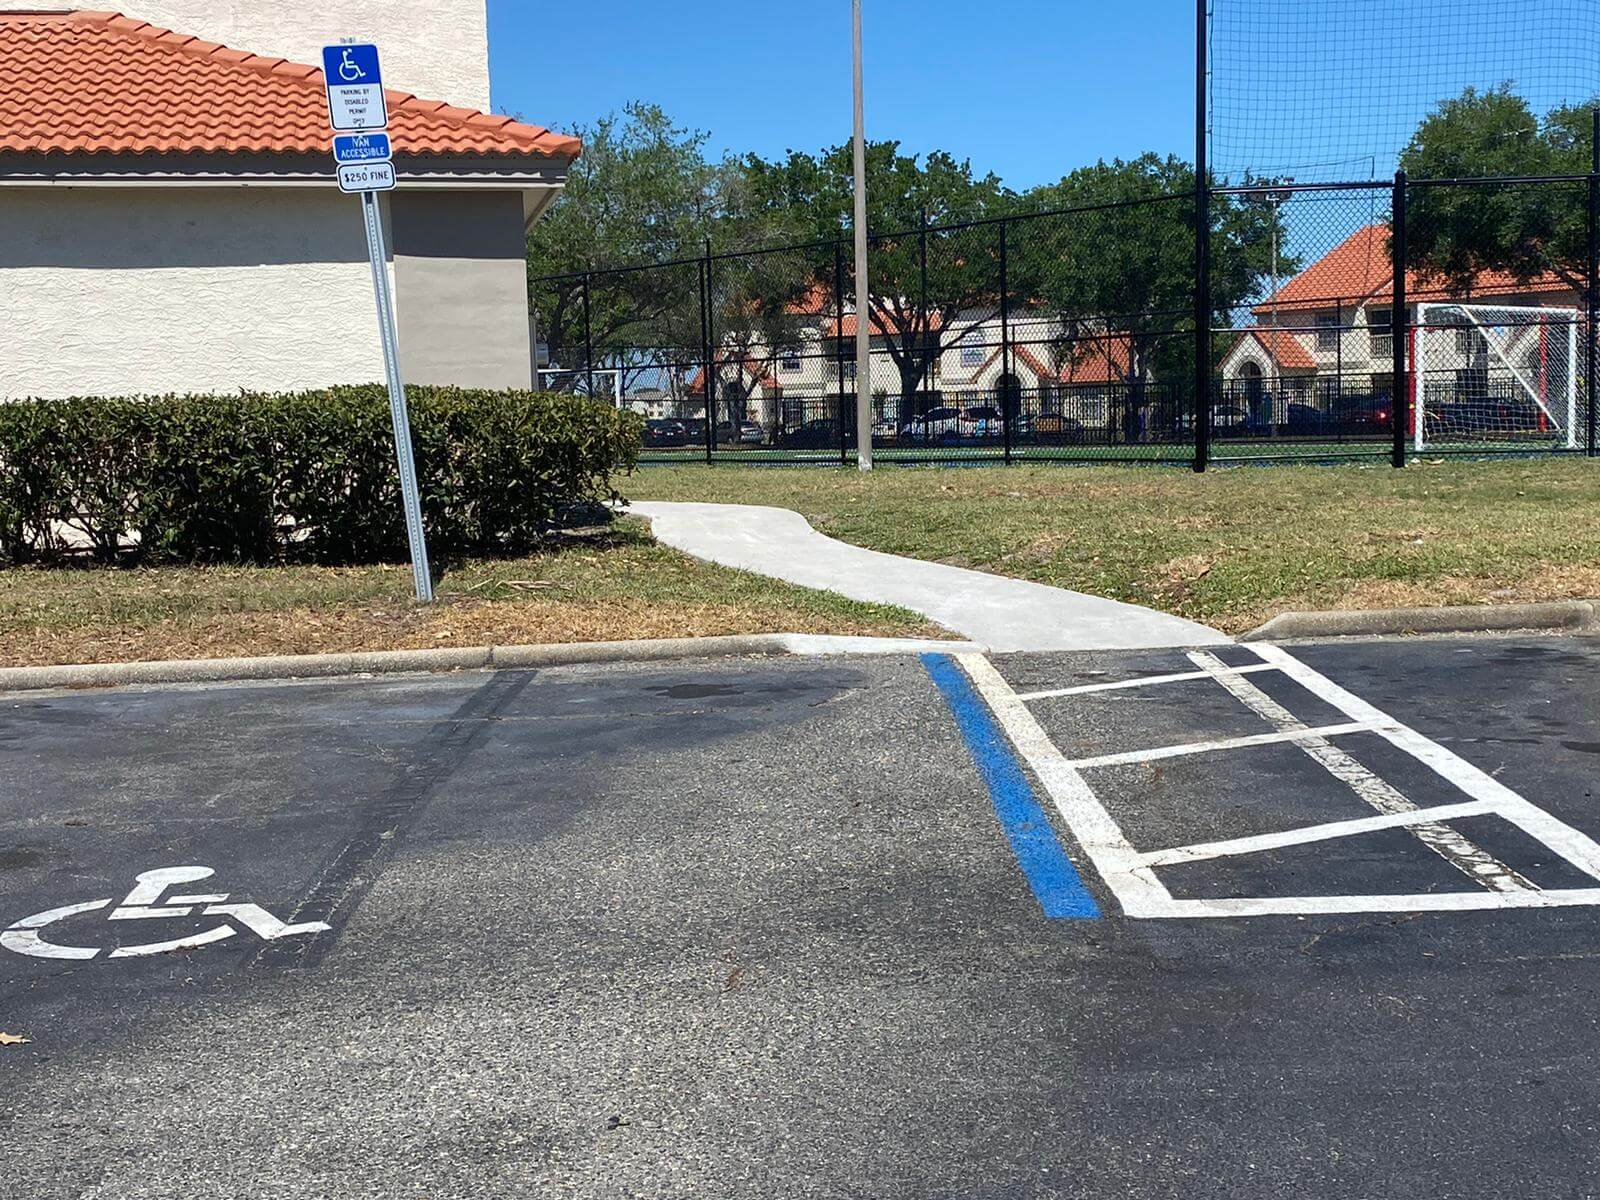 Dedicated handicap parking space that is van accessible with an accessible pathway leading to the racquetbal court.